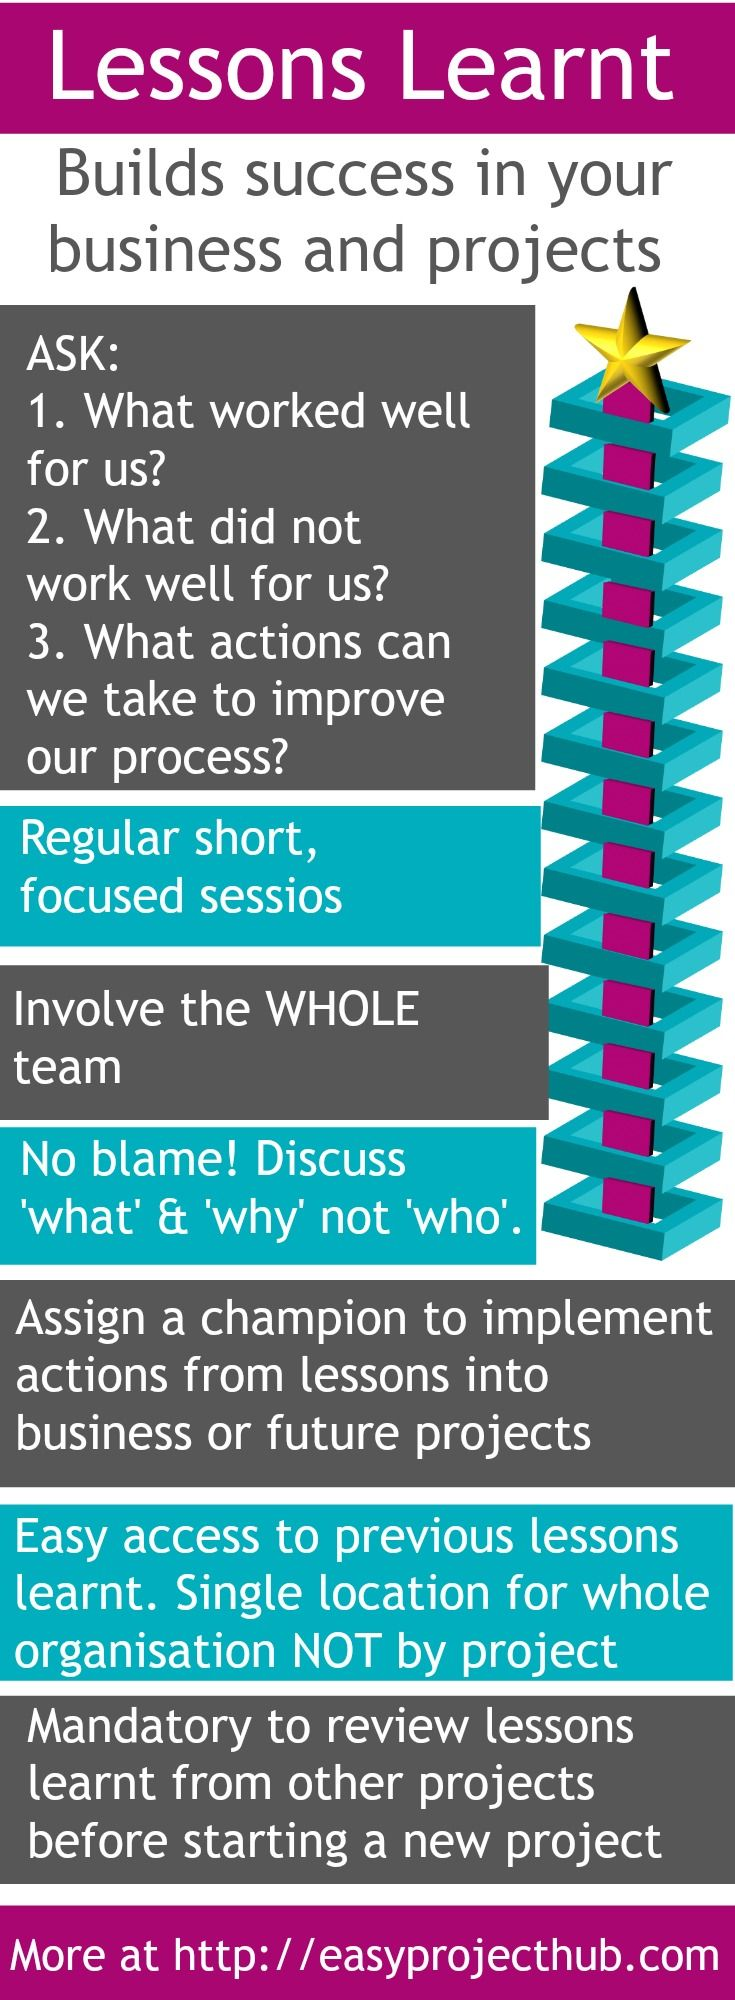 Done well, lessons learnt can have a huge impact on your projects and business. Click through for more....